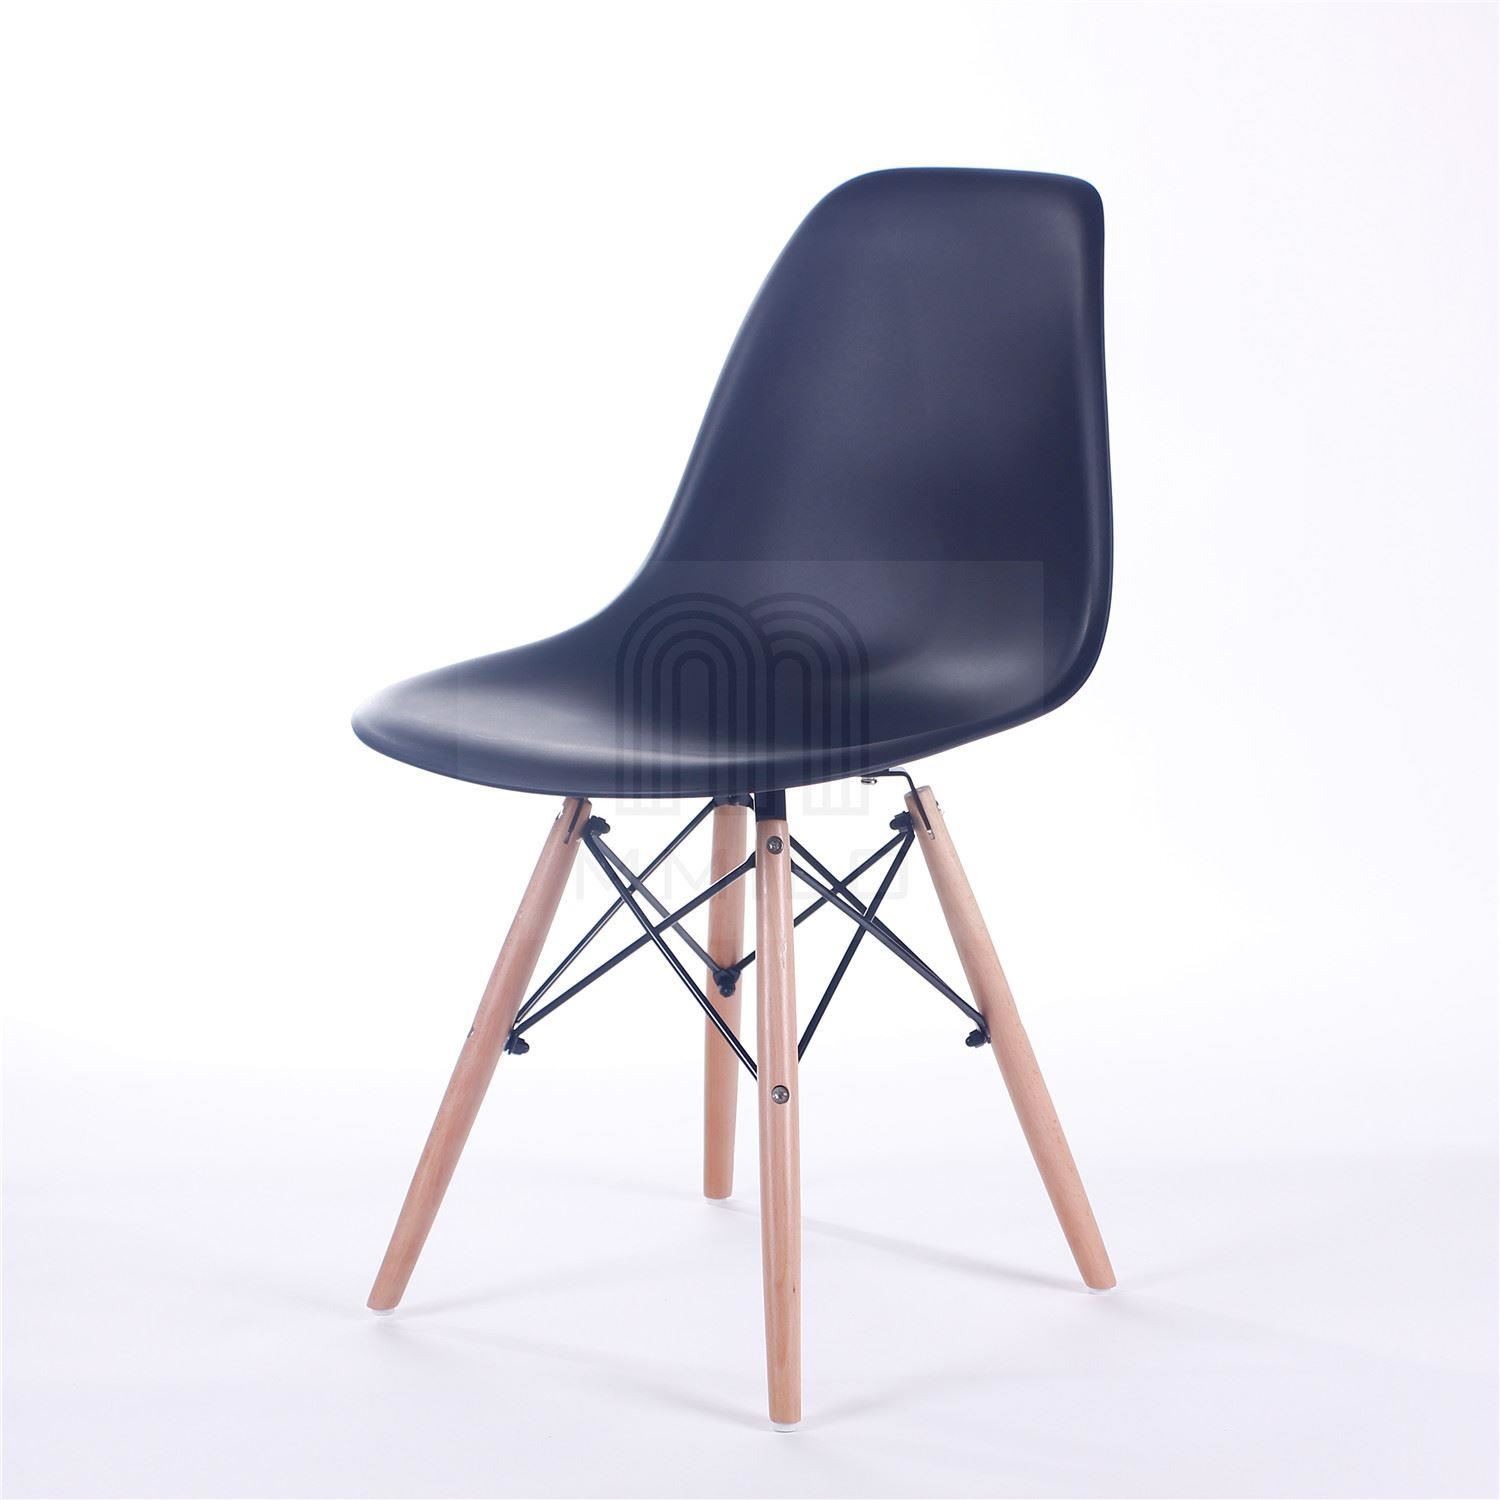 charles ray eames eiffel inspired dsw dining chair retro design contemporary ebay. Black Bedroom Furniture Sets. Home Design Ideas